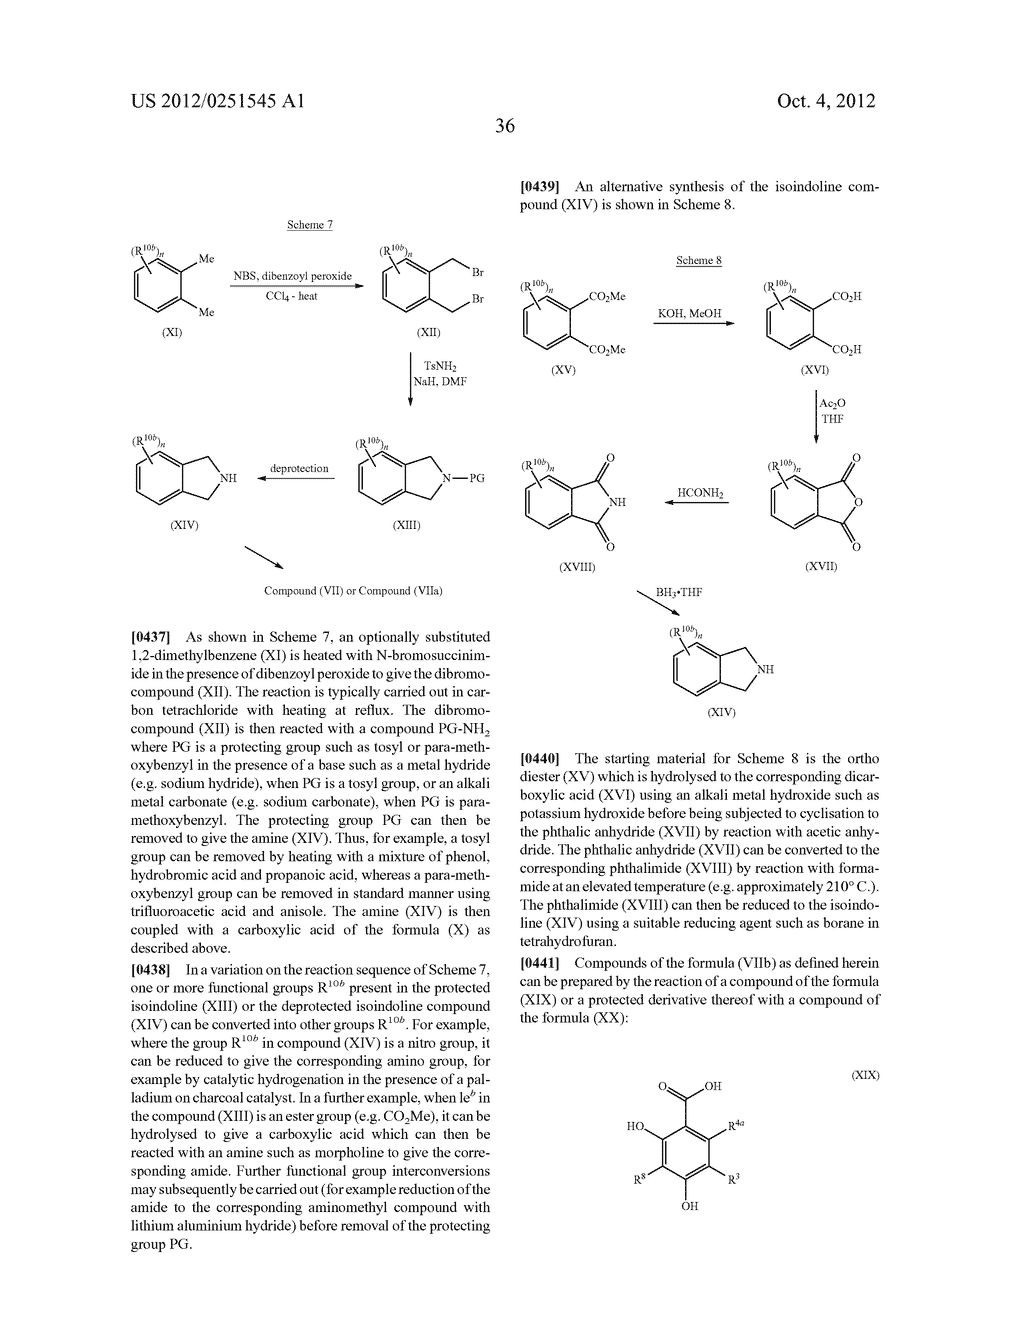 Therapeutic Combinations Of Hydroxybenzamide Derivatives As Inhibitors Of     HSP90 - diagram, schematic, and image 37